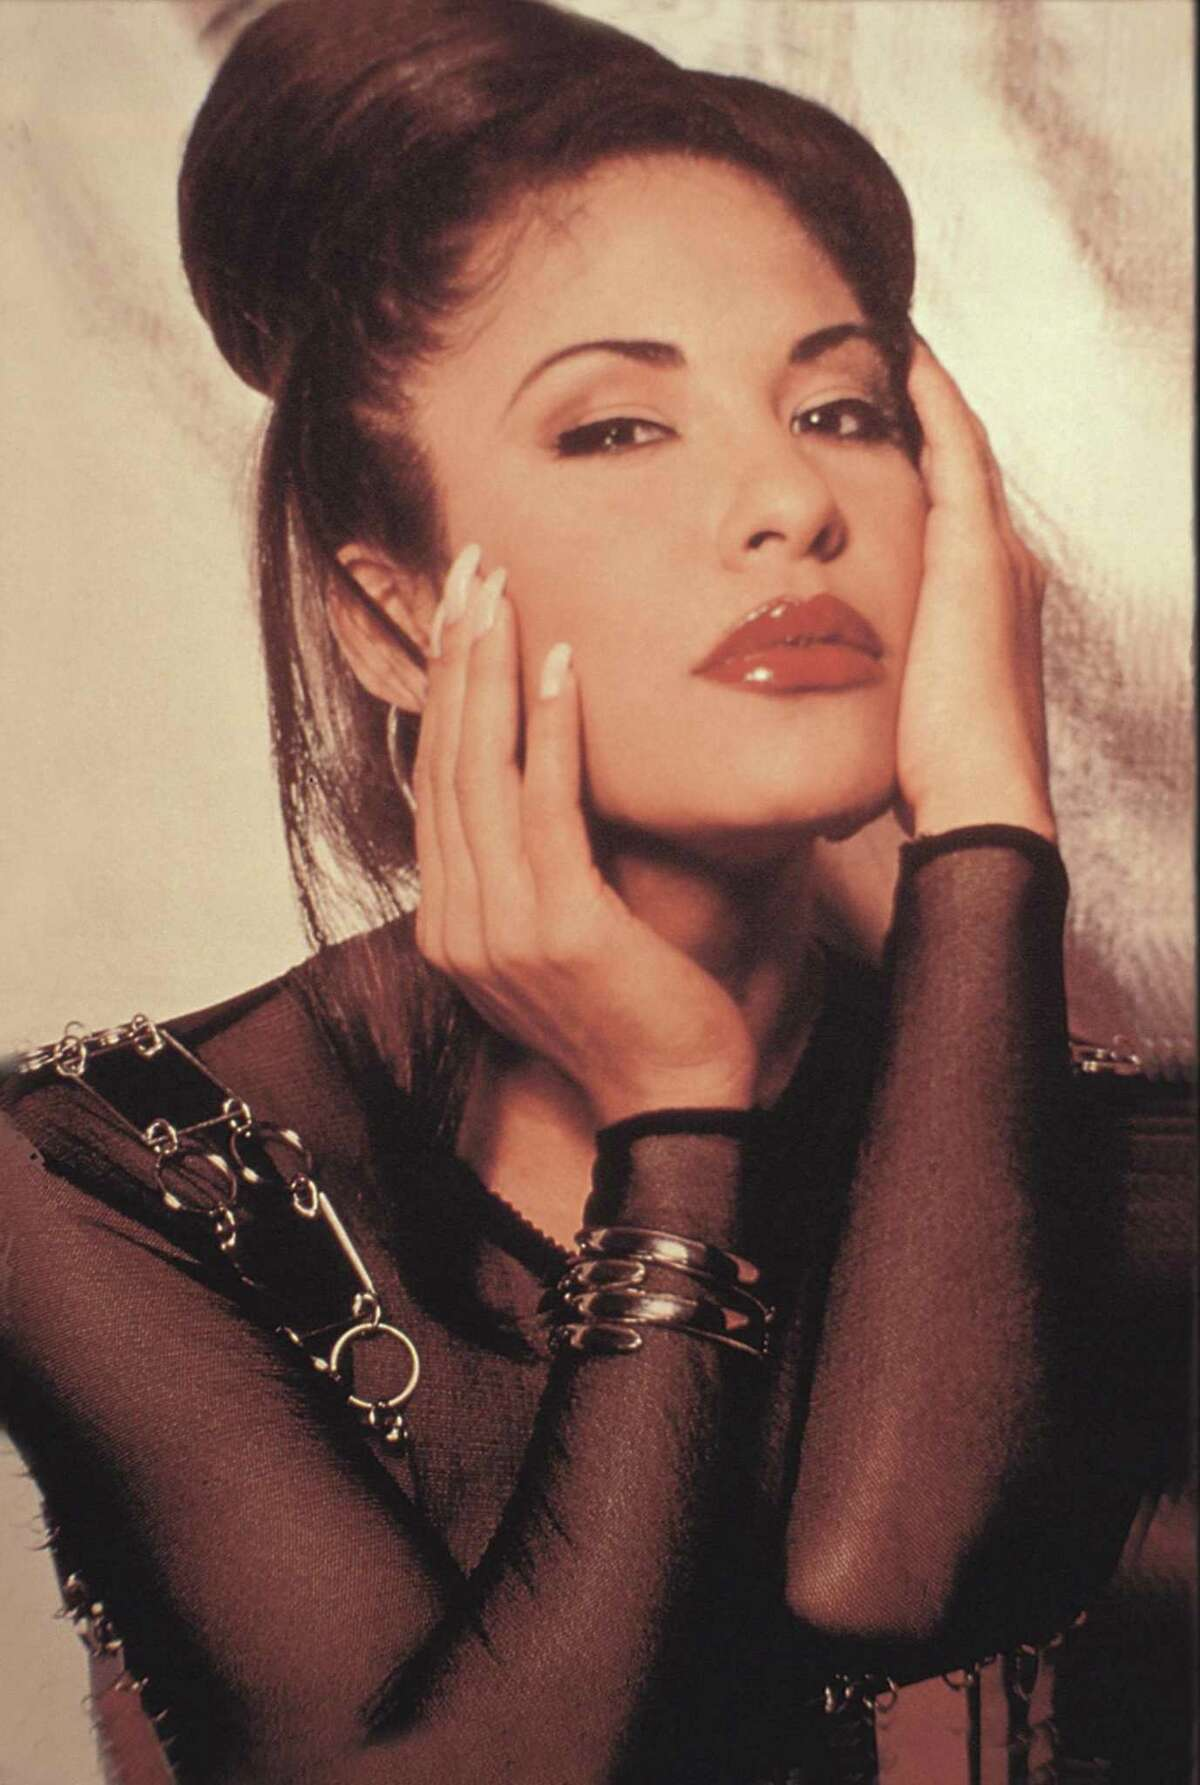 PHOTOS: Iconic Selena photosDie-hard fans will have the ultimate chance to celebrate the Queen of Tejano during a Selena-inspired dinner cruise departing from Kemah Boardwalk later this month.>>>See more for iconic photos of the Queen of Tejano...